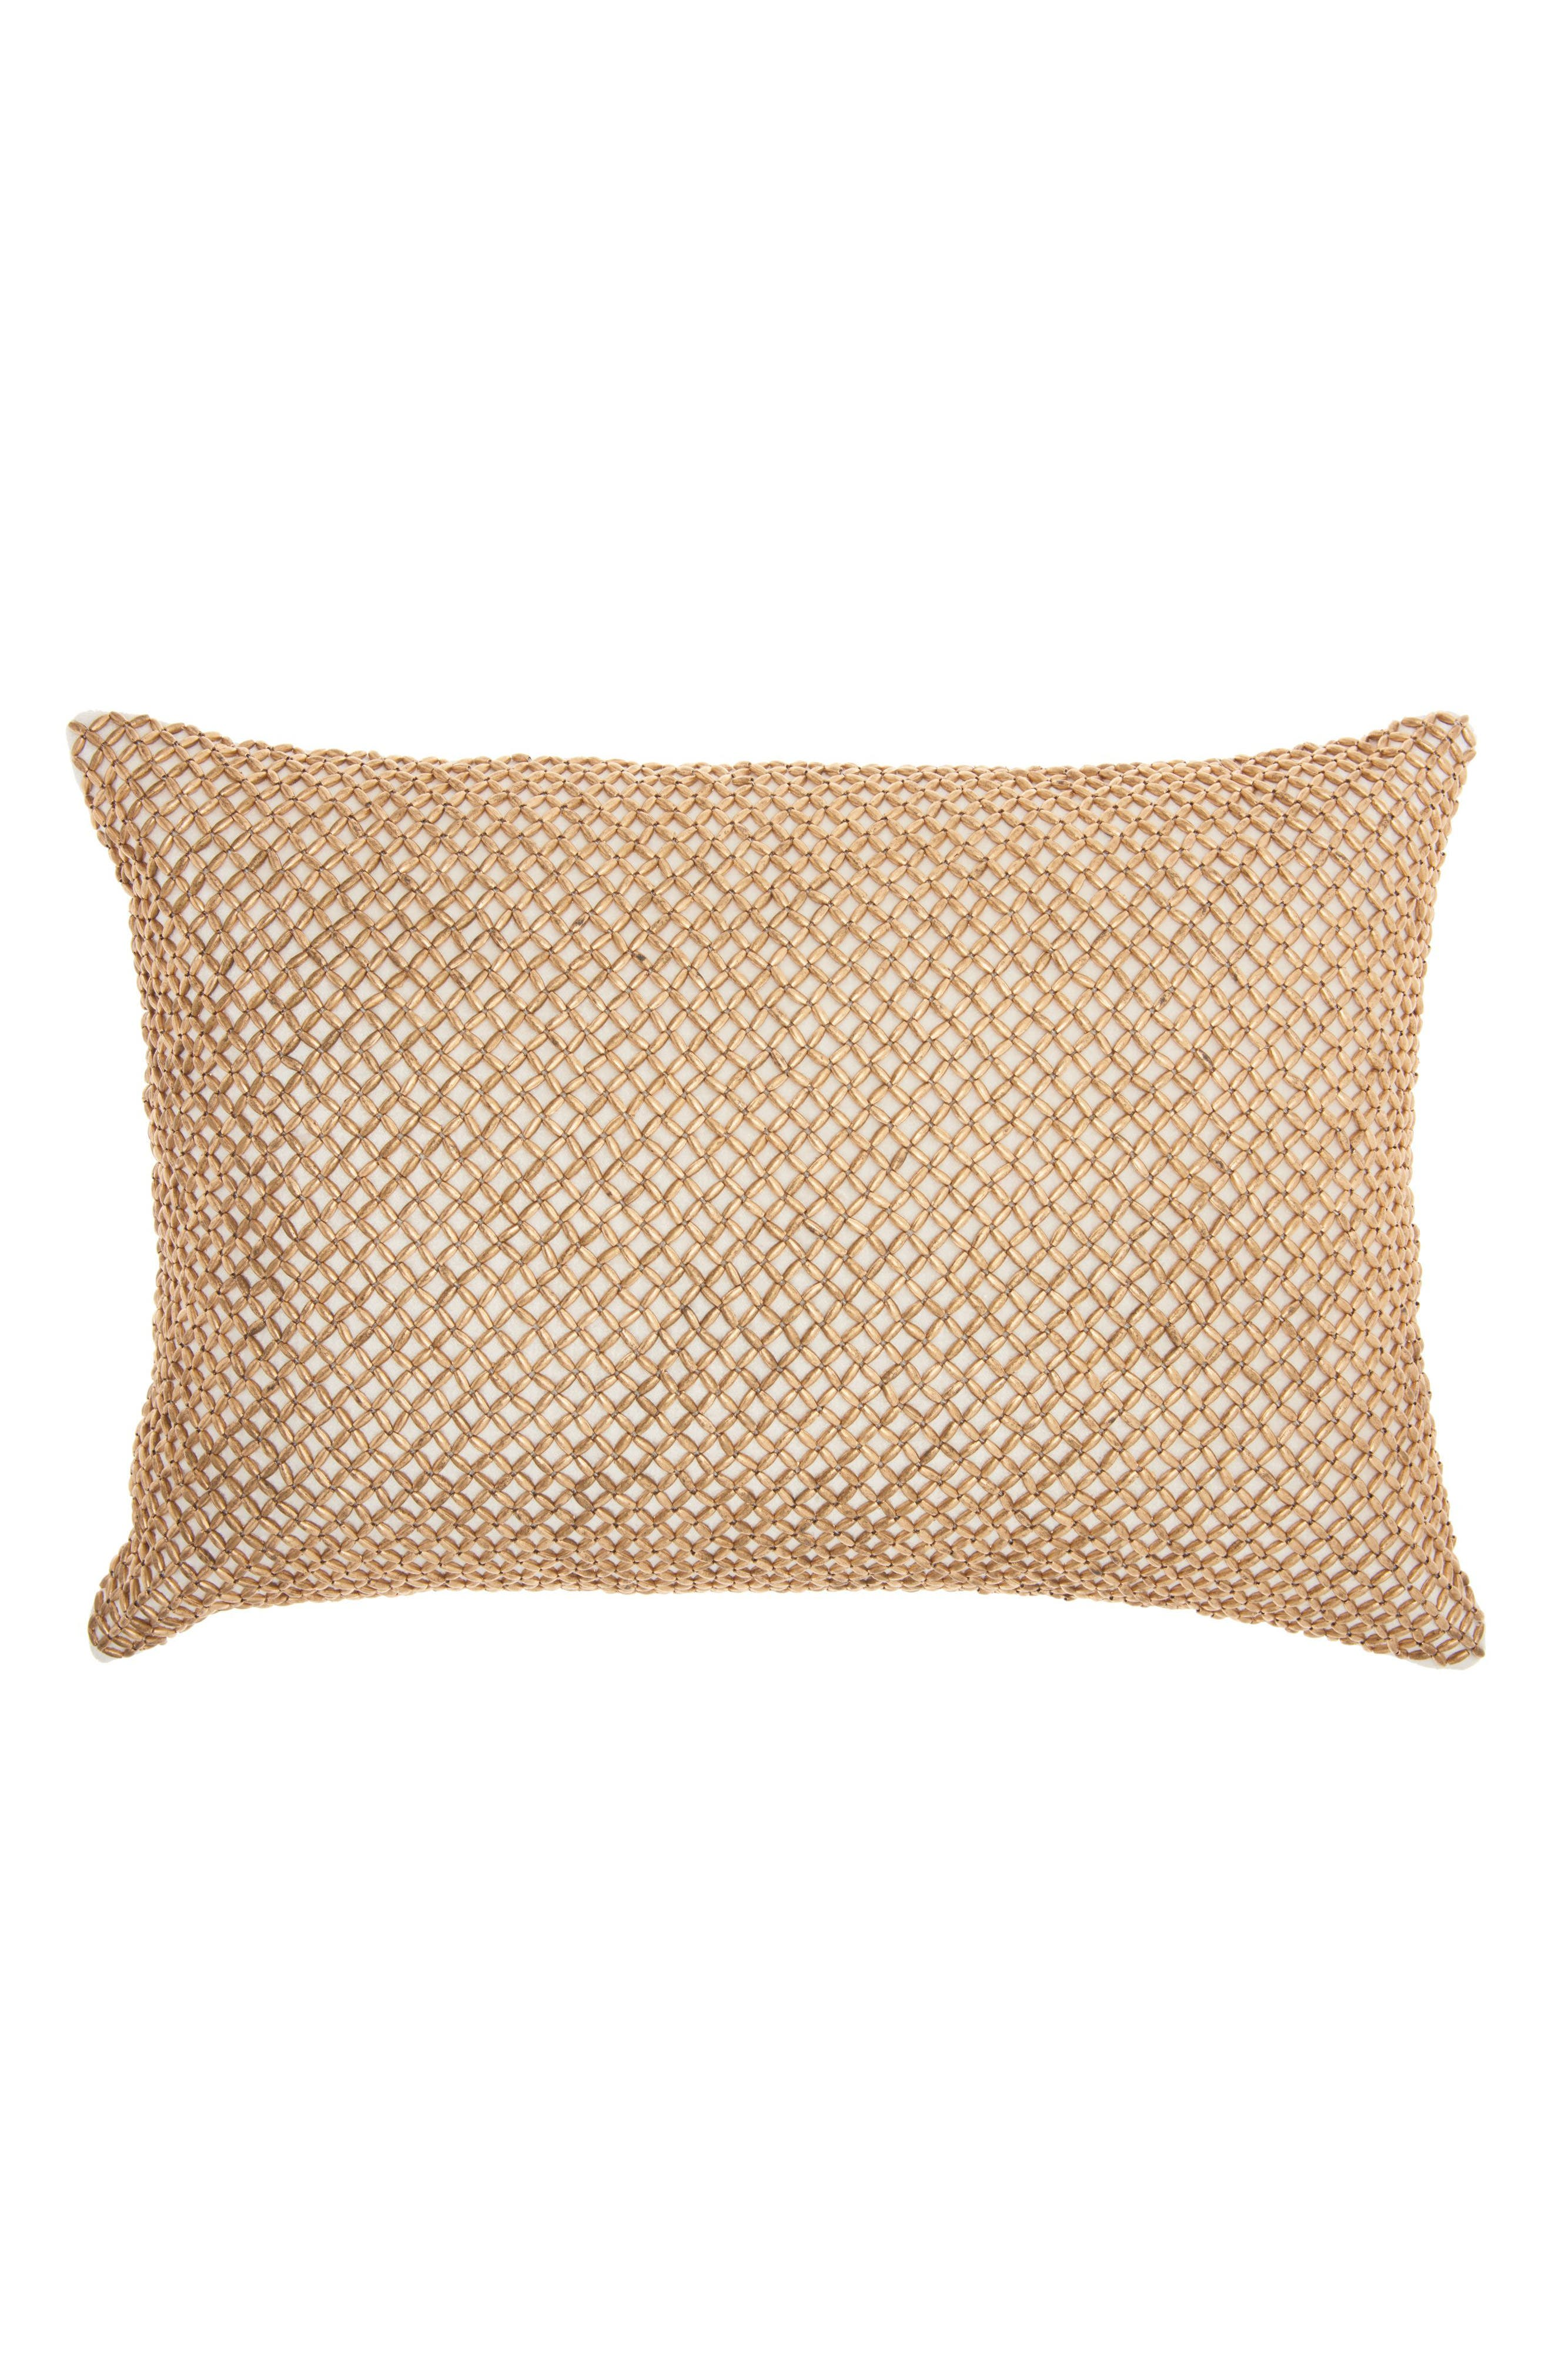 Main Image - Mina Victory Cobble Jewel Accent Pillow